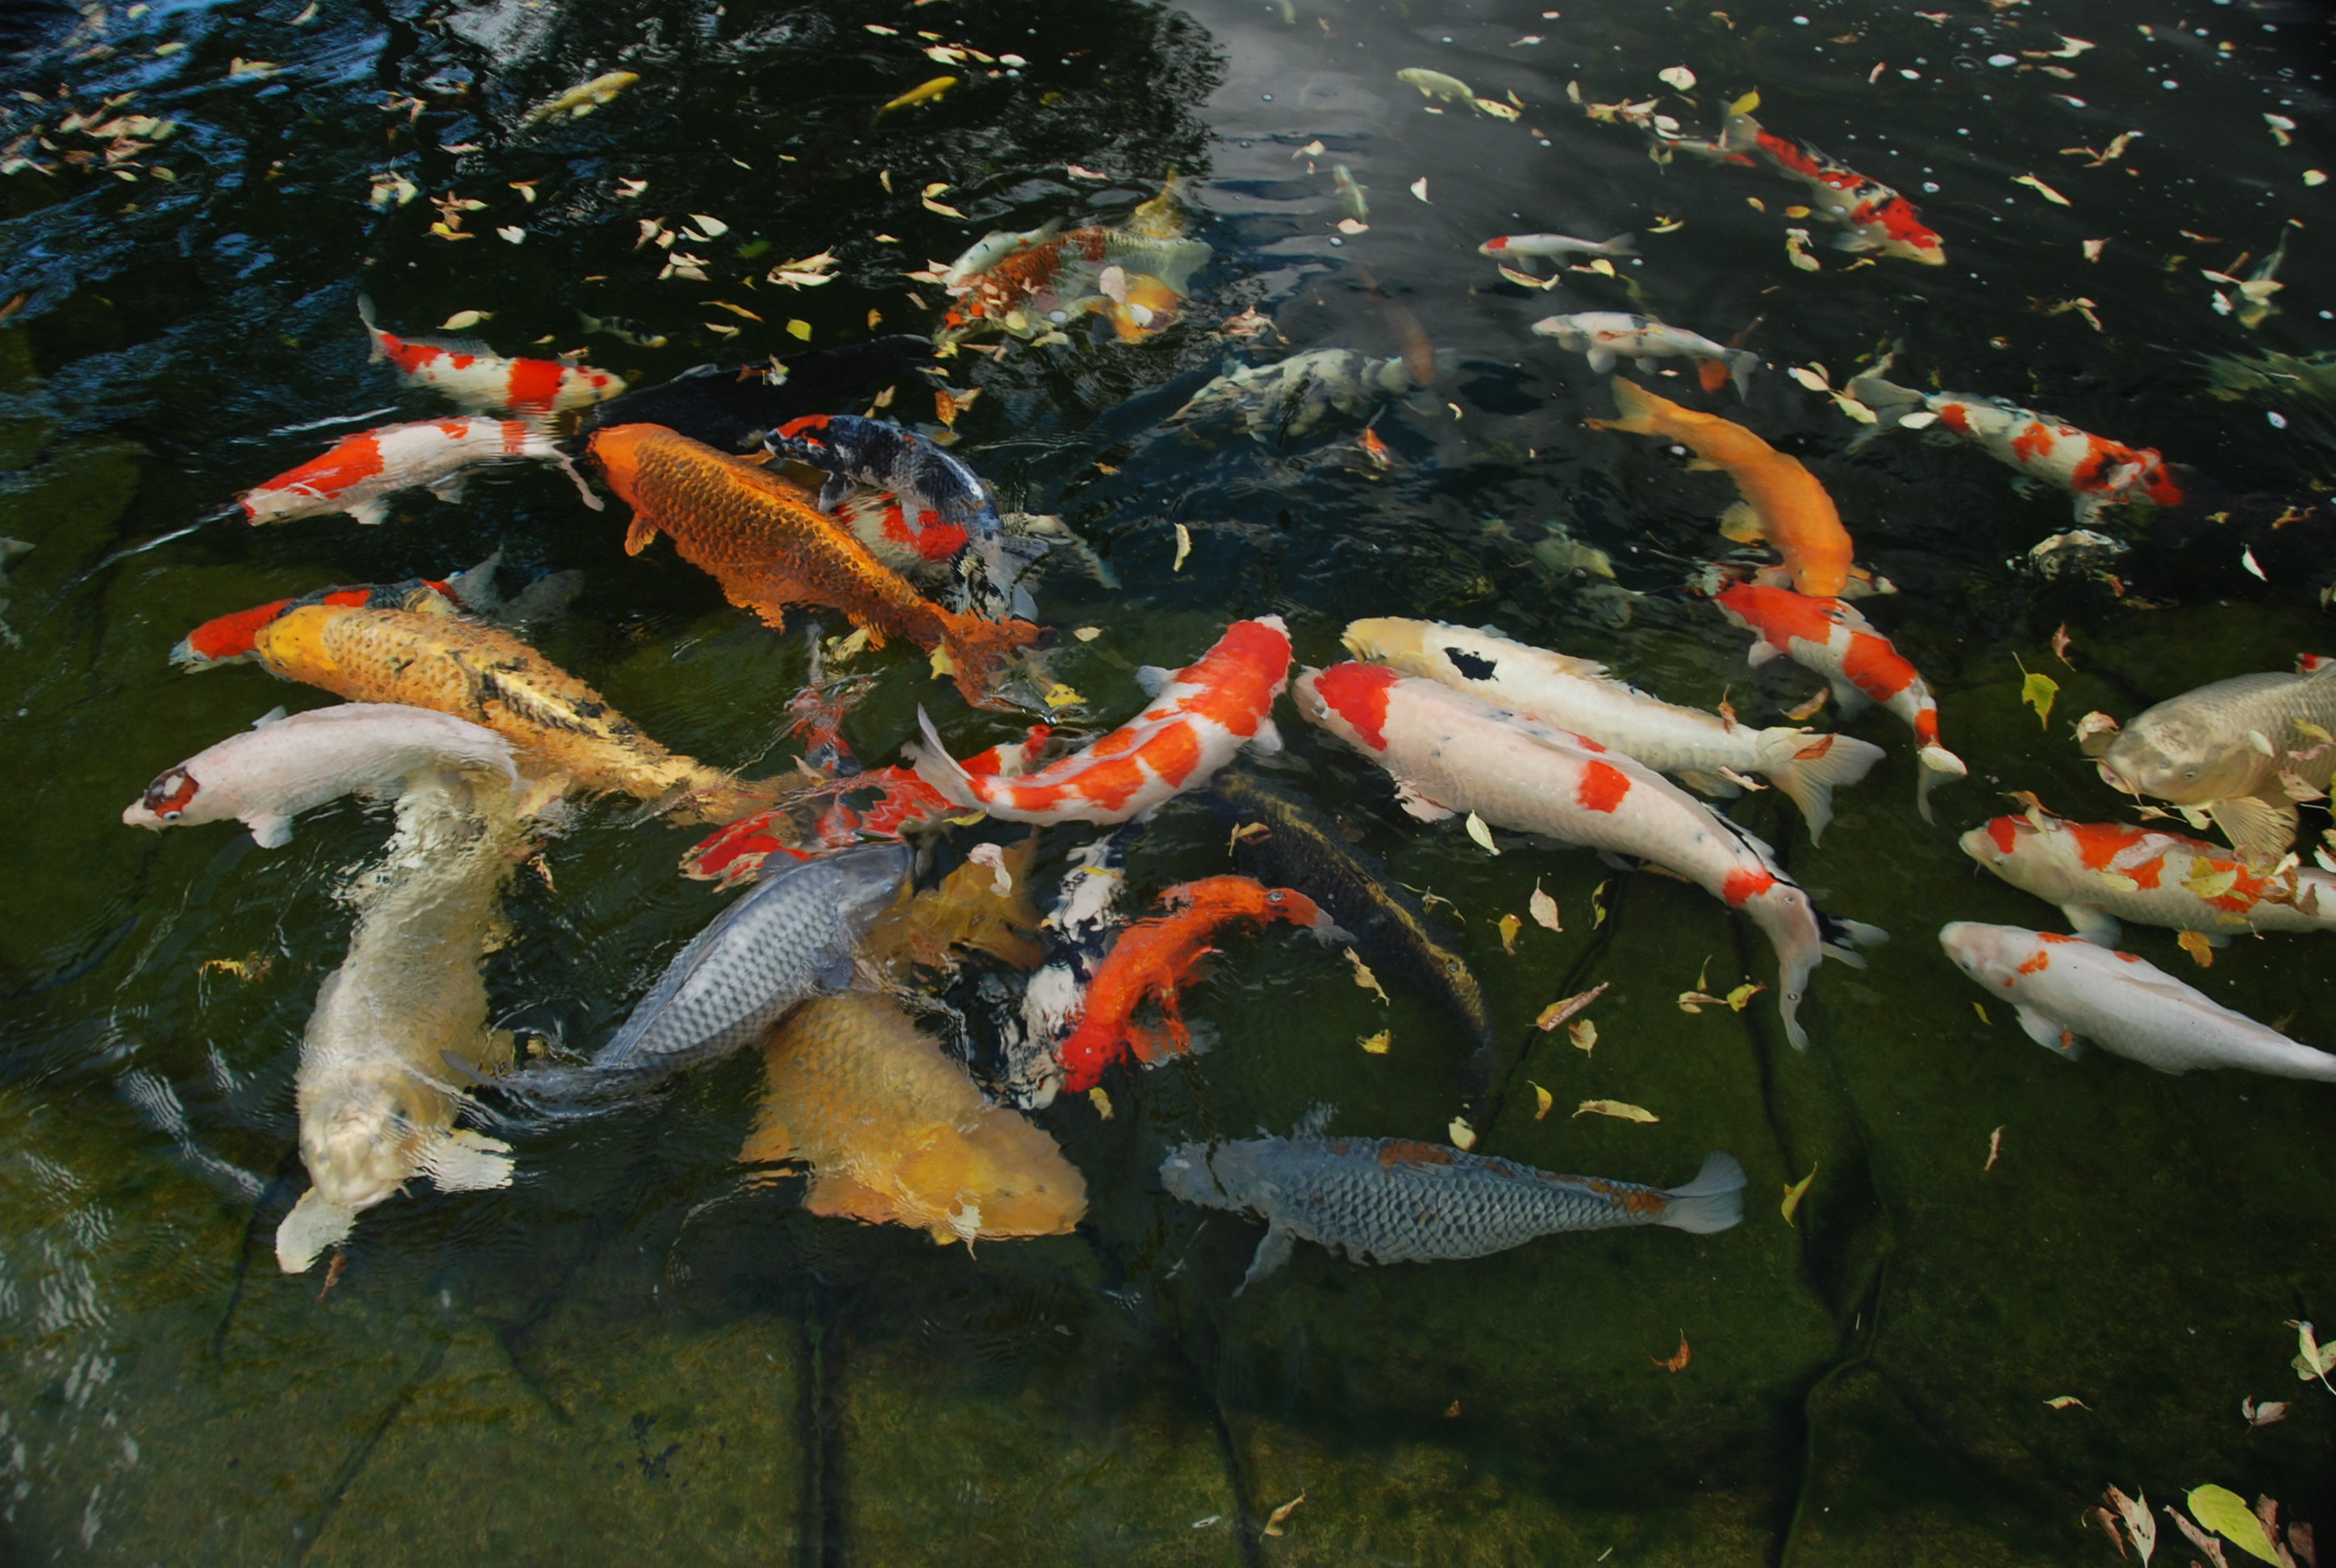 Koi acres imported japanese koi online shopping for koi for Koi pond pics